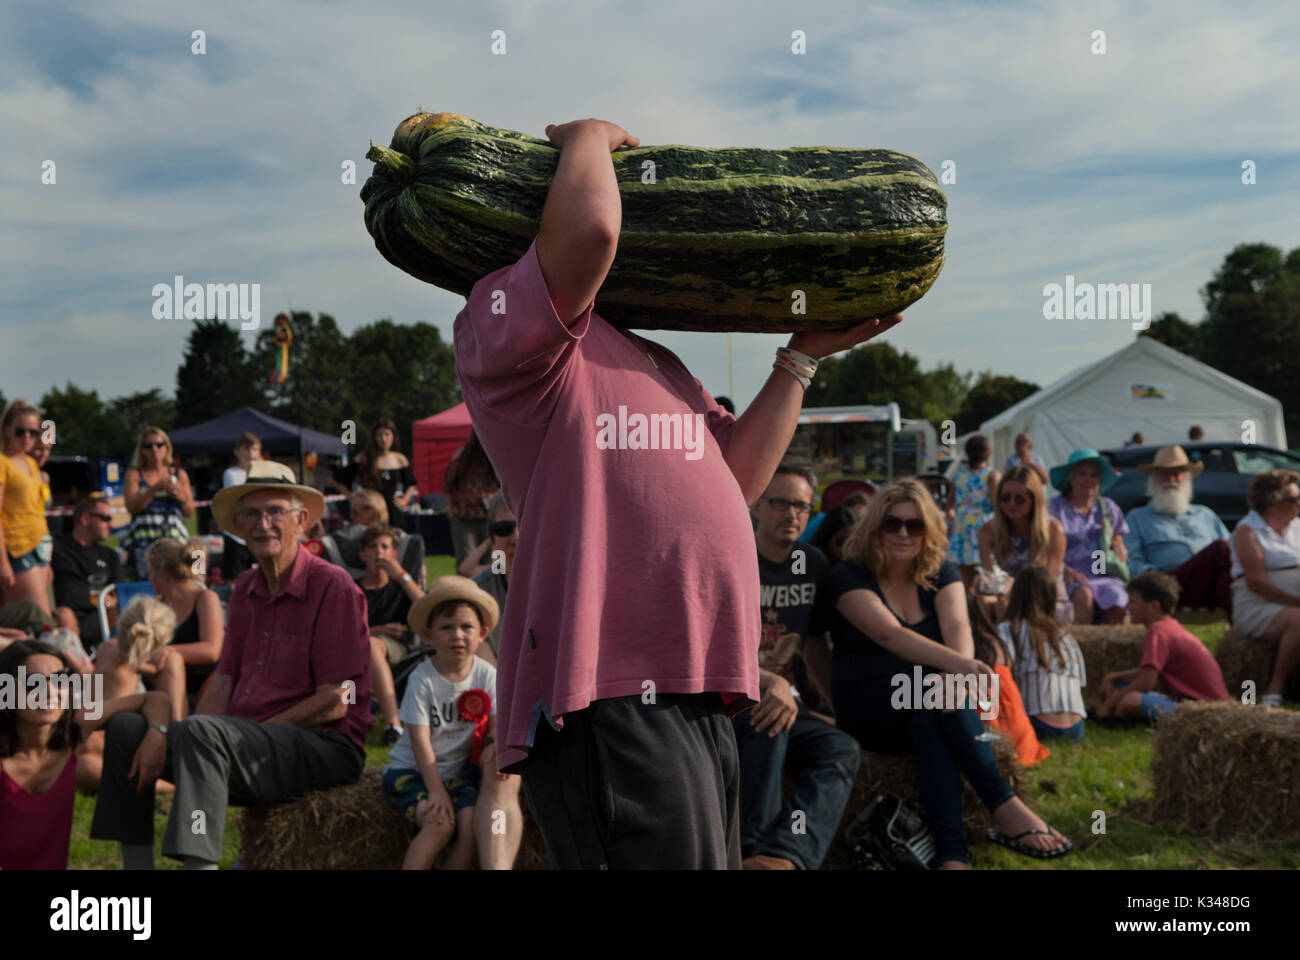 Village fete huge marrow being shown for auction, money for church fund, 2017 2010s HOMER SYKES - Stock Image